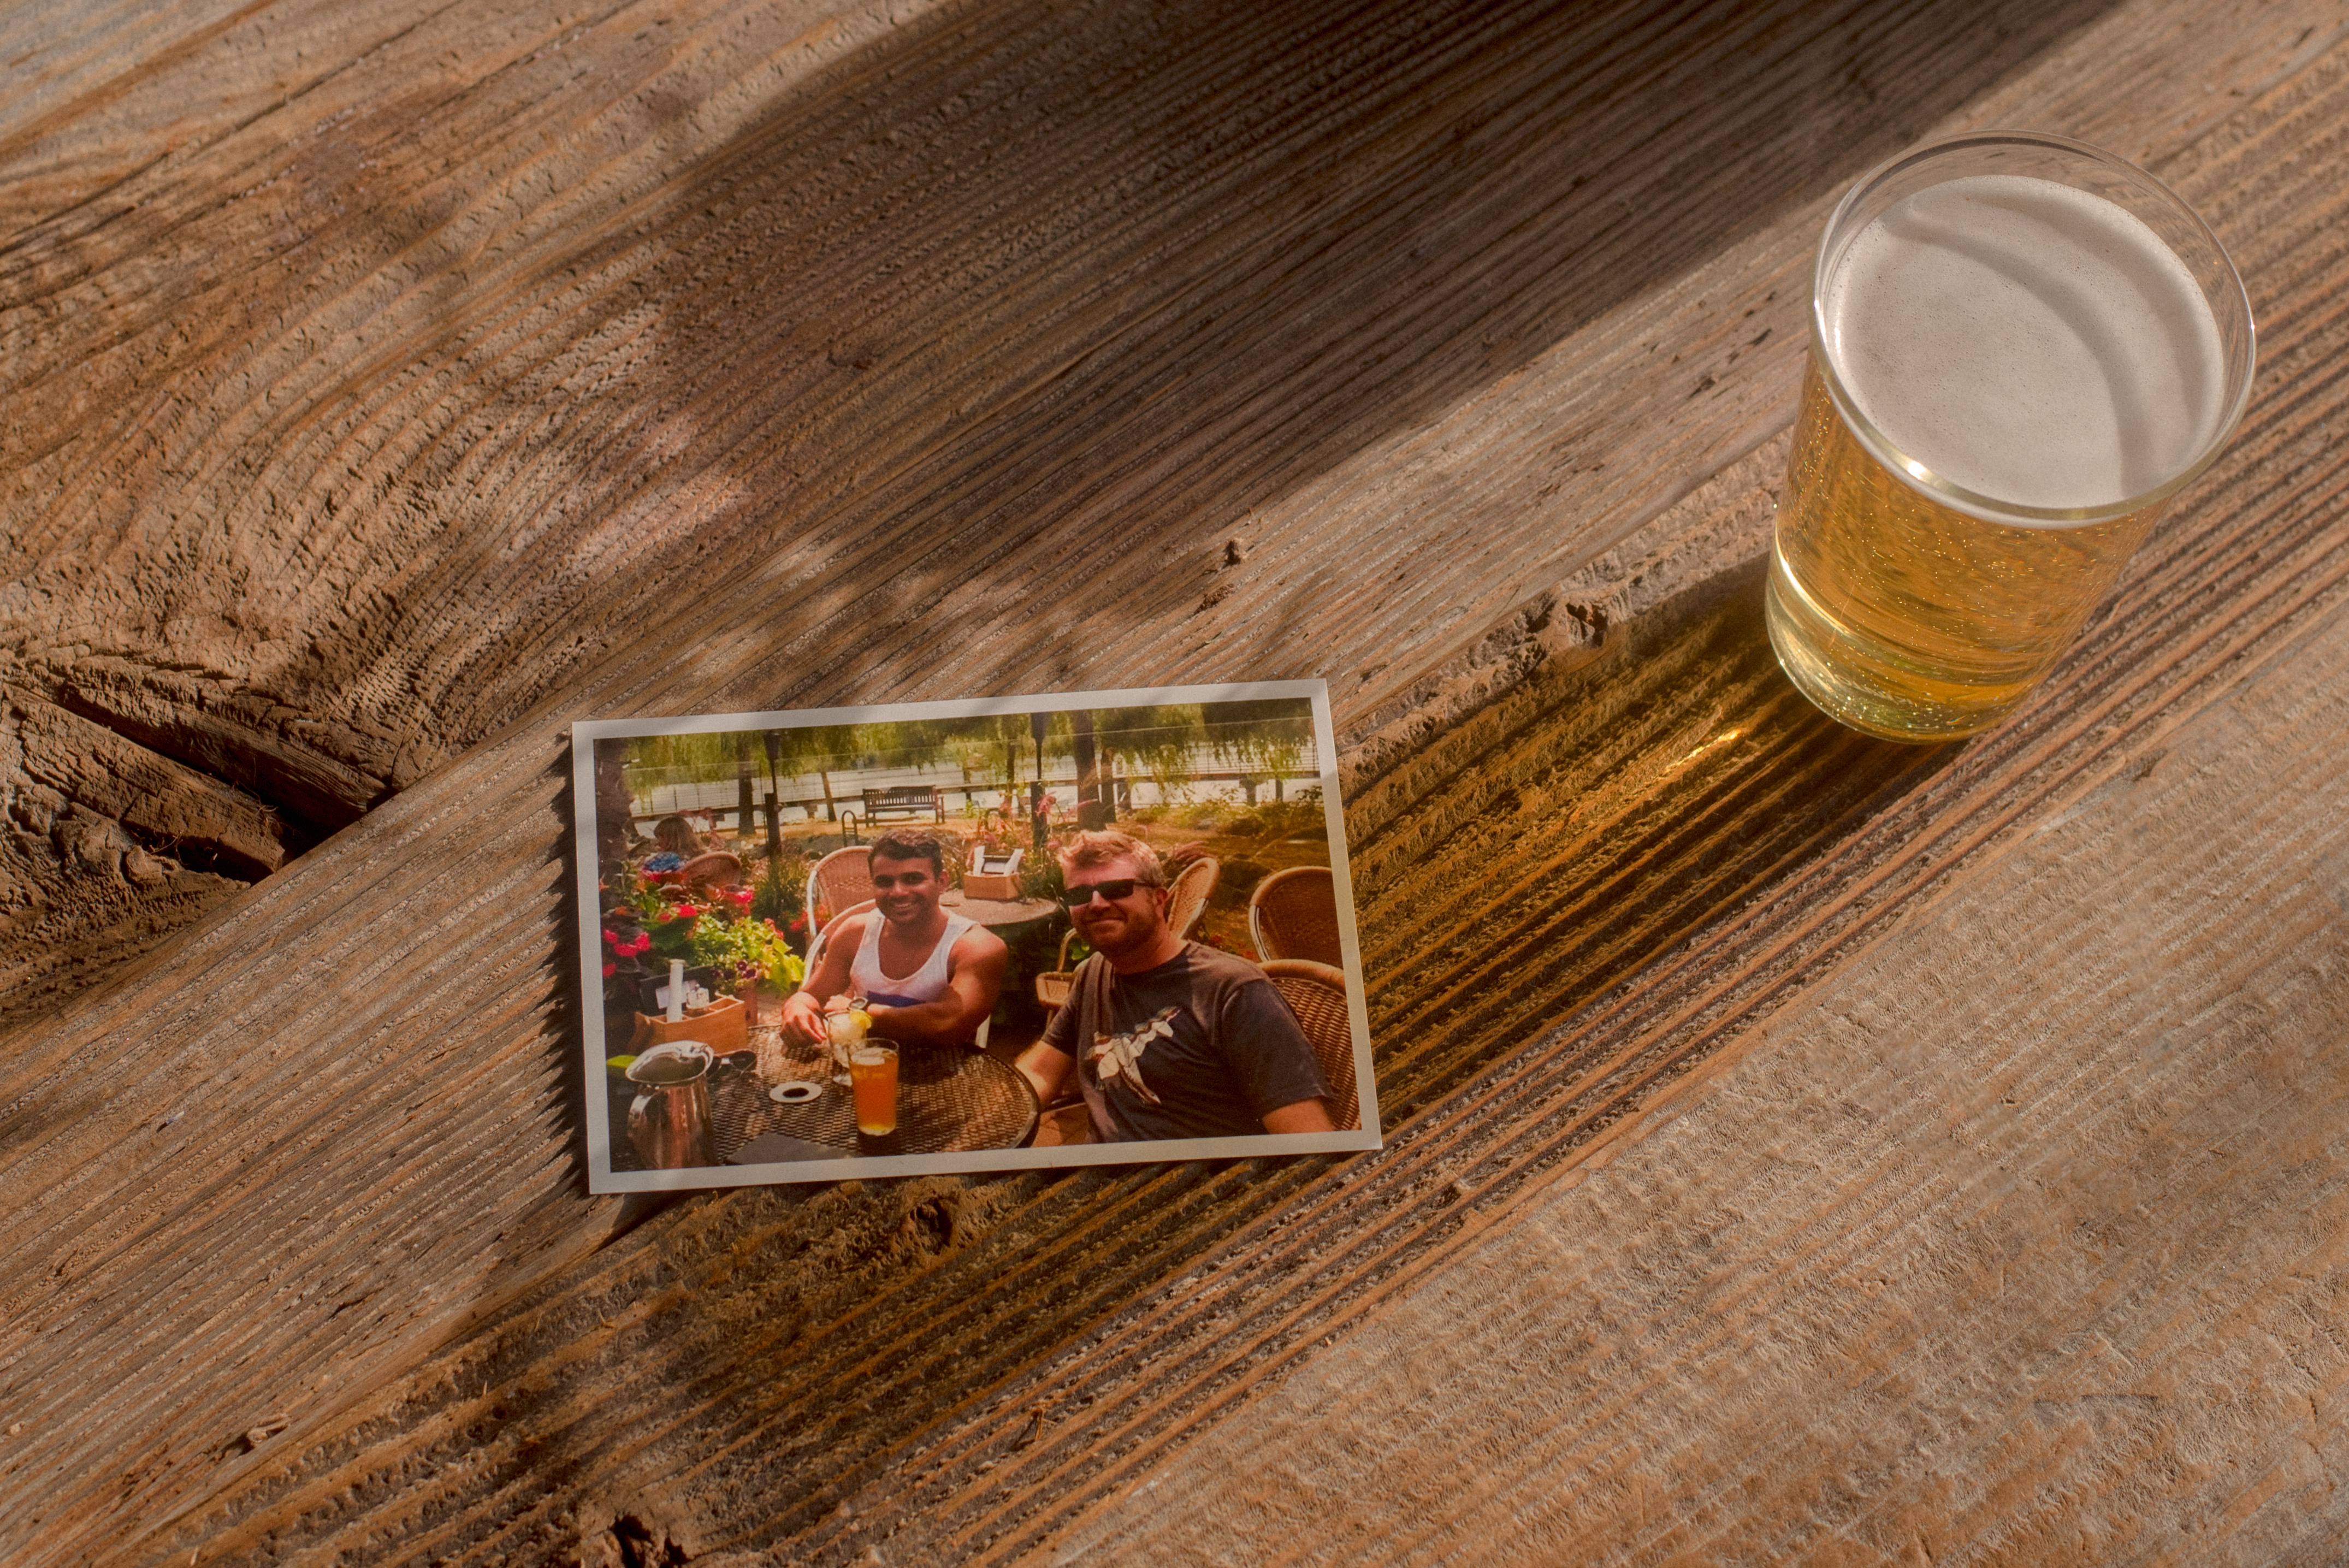 A photograph of two friends sits on a wood table beside a glass of beer.